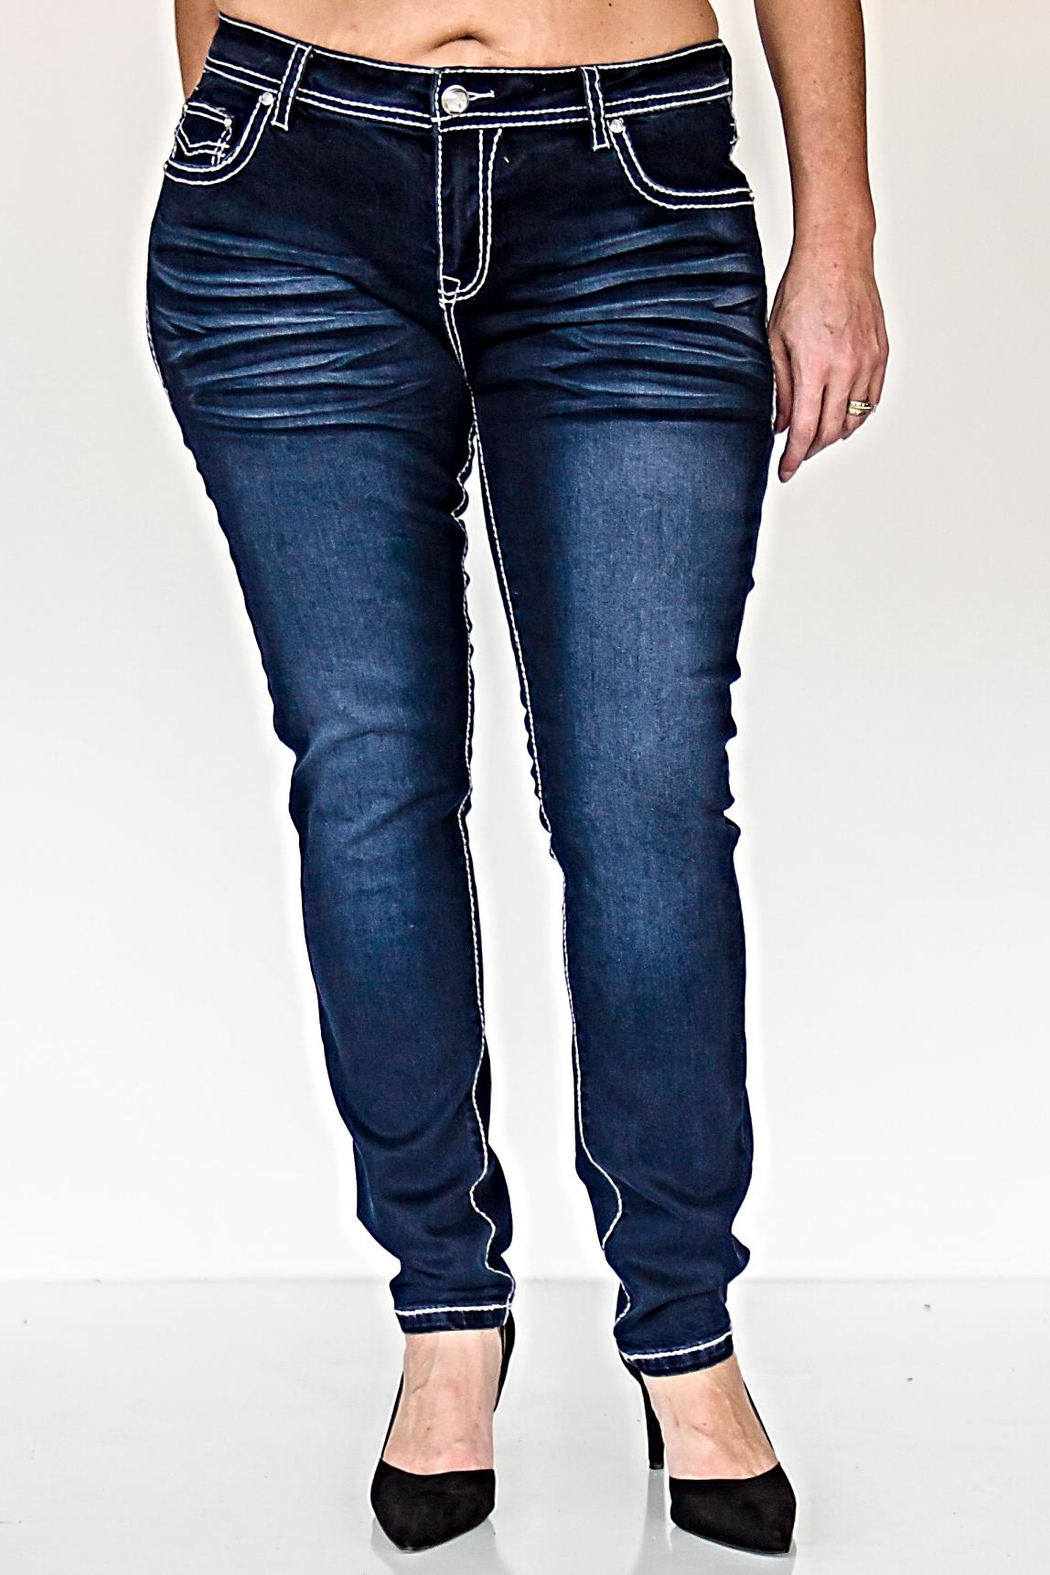 KITTY COUTURE  P413 Denim Jeans - Main Image